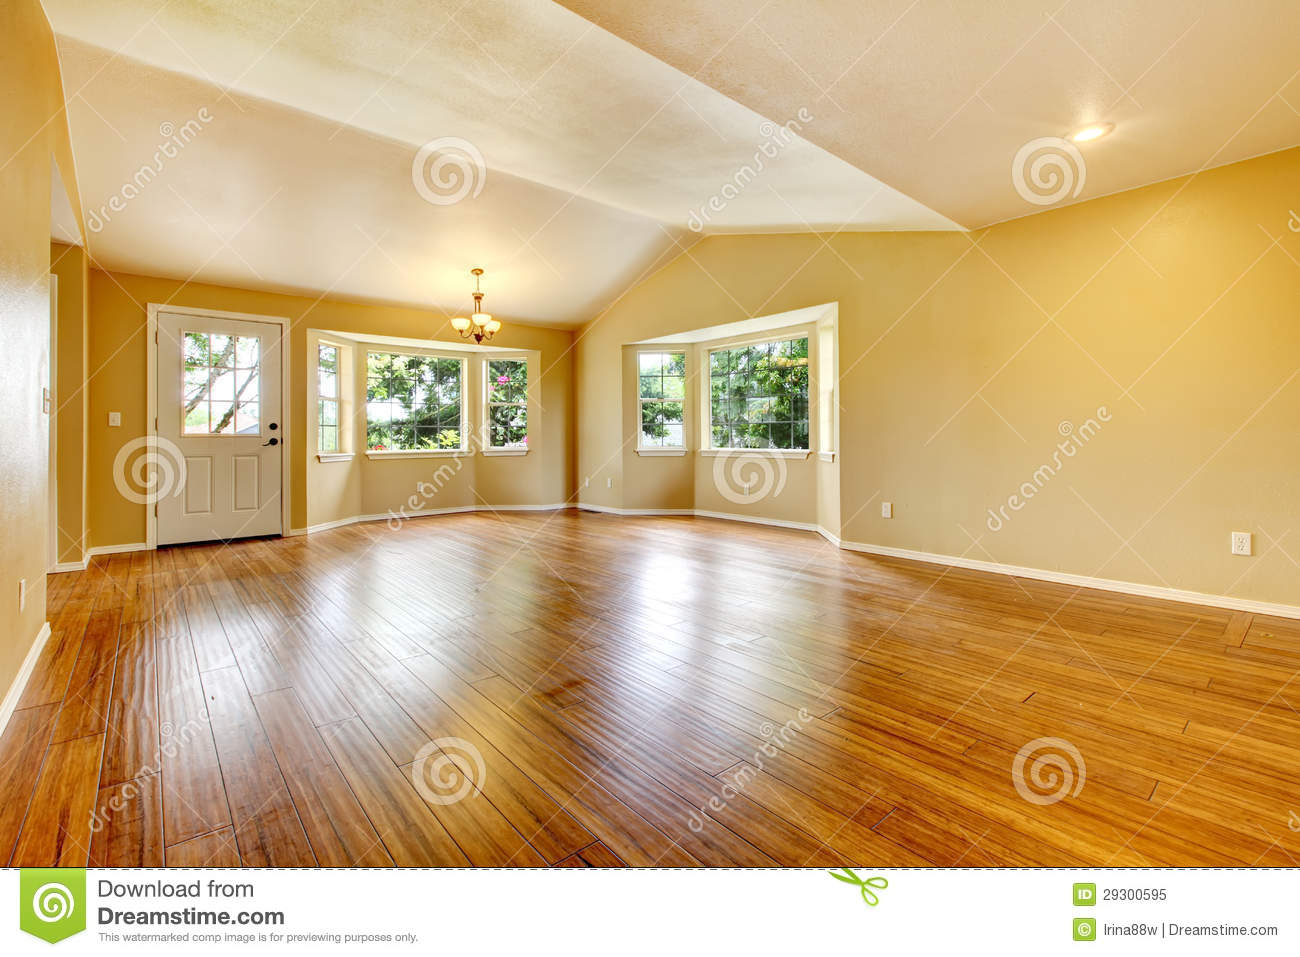 99+ Dining Room With Parquet Flooring - Dining Room With Reclaimed ...